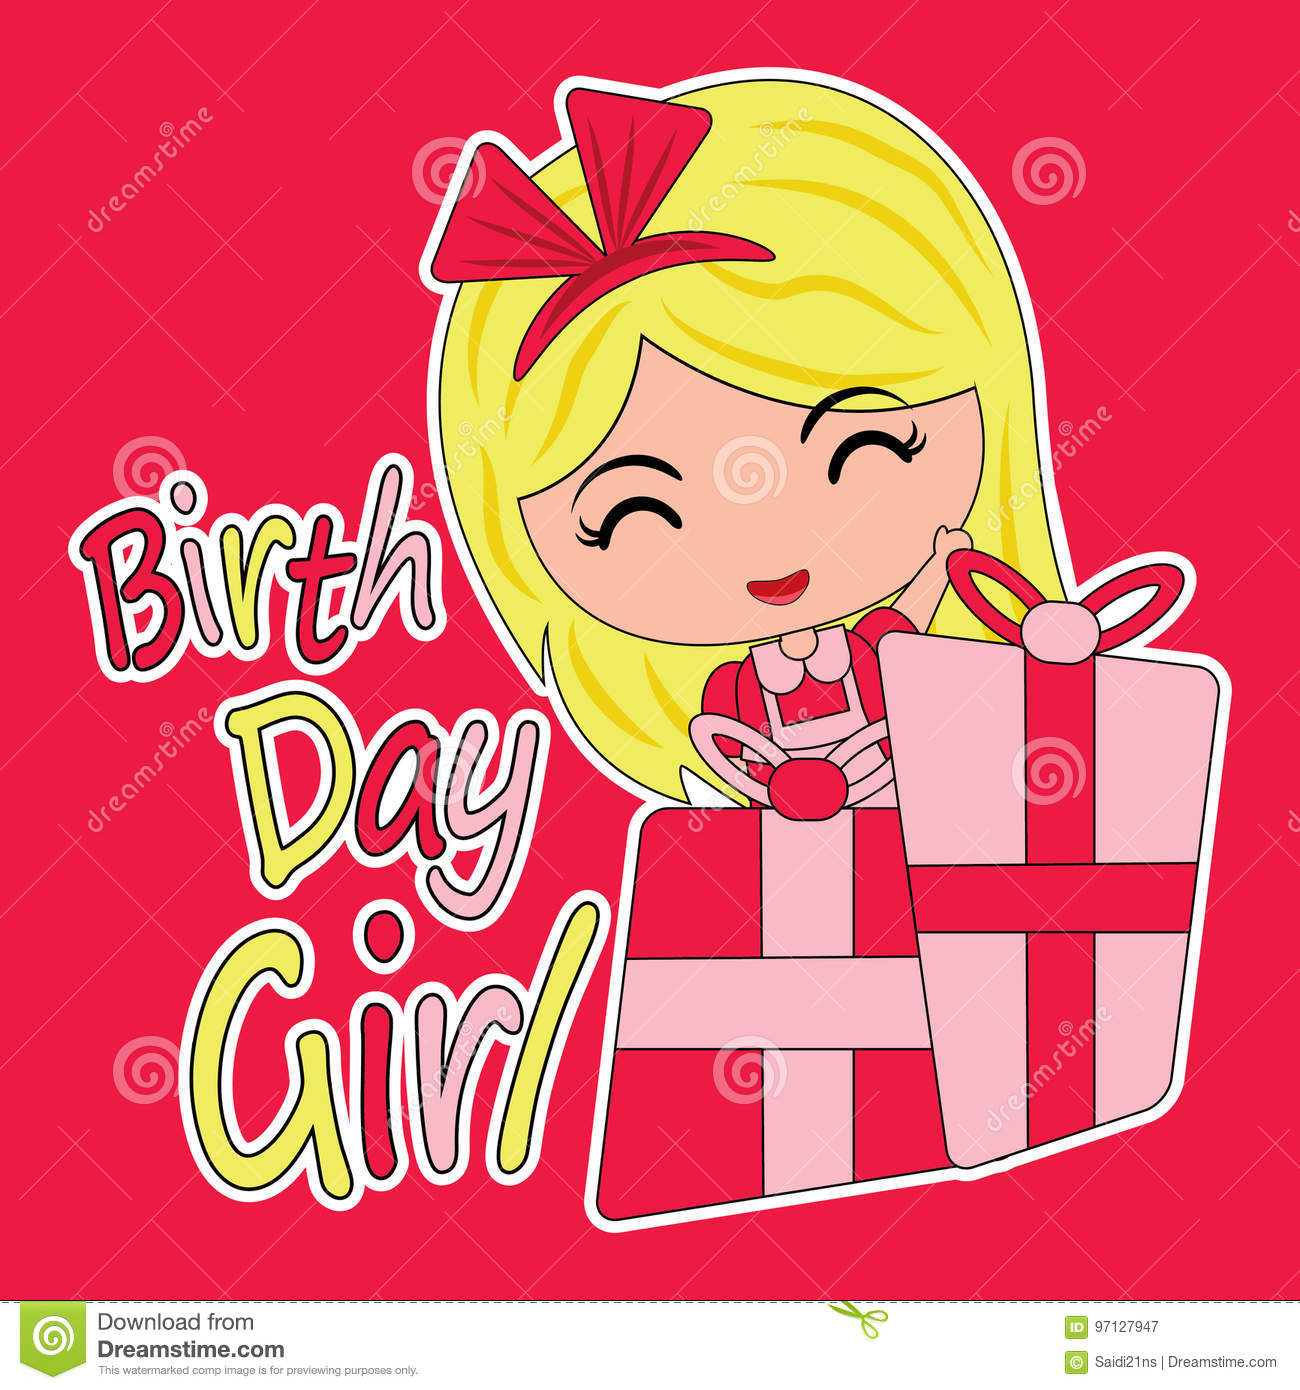 Birthday Card Cartoon With Cute Girl And Gift Boxes Suitable For Kid